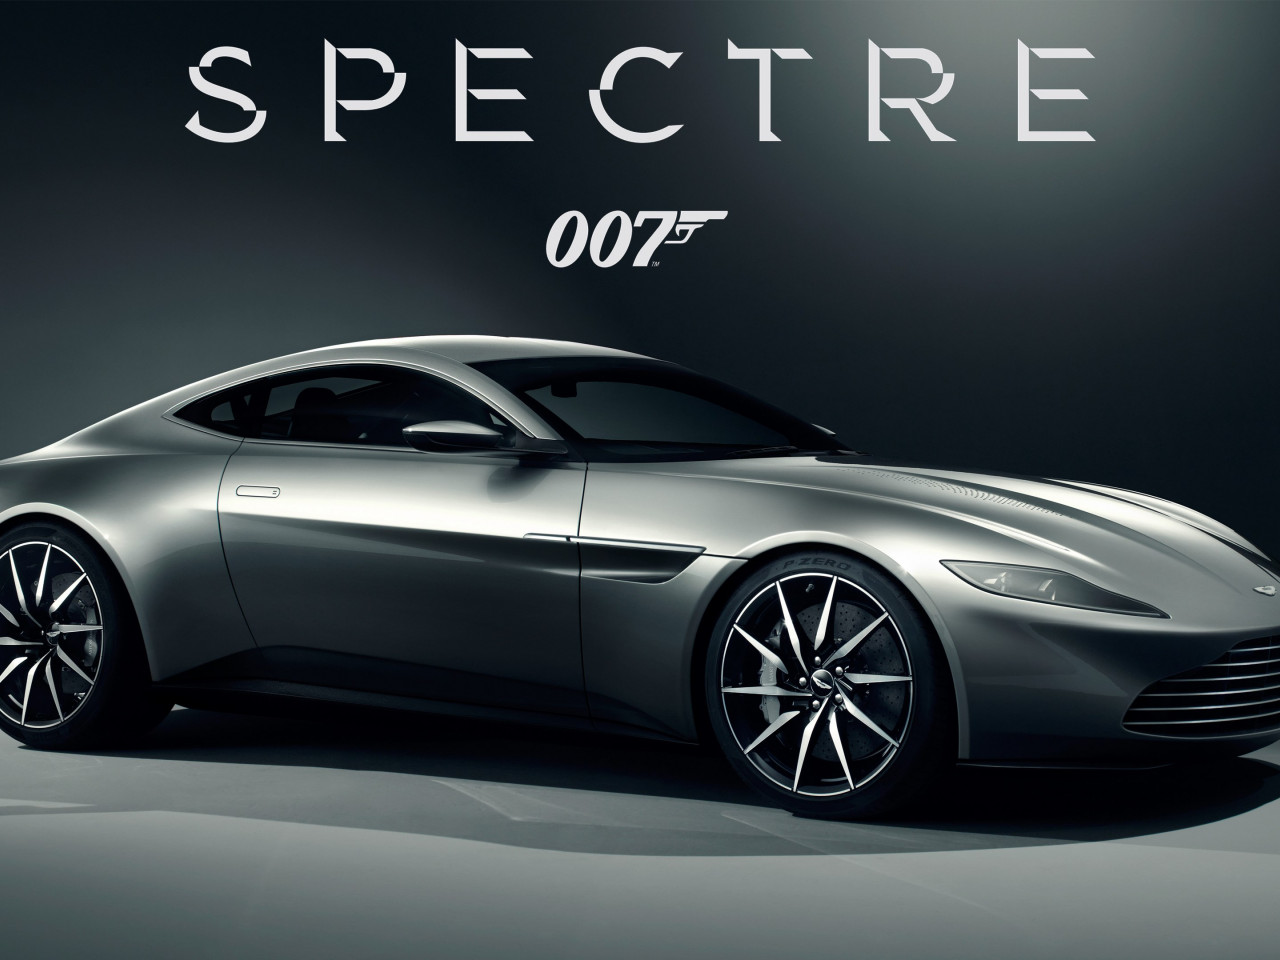 Aston Martin DB10 007 Spectre car wallpaper 1280x960